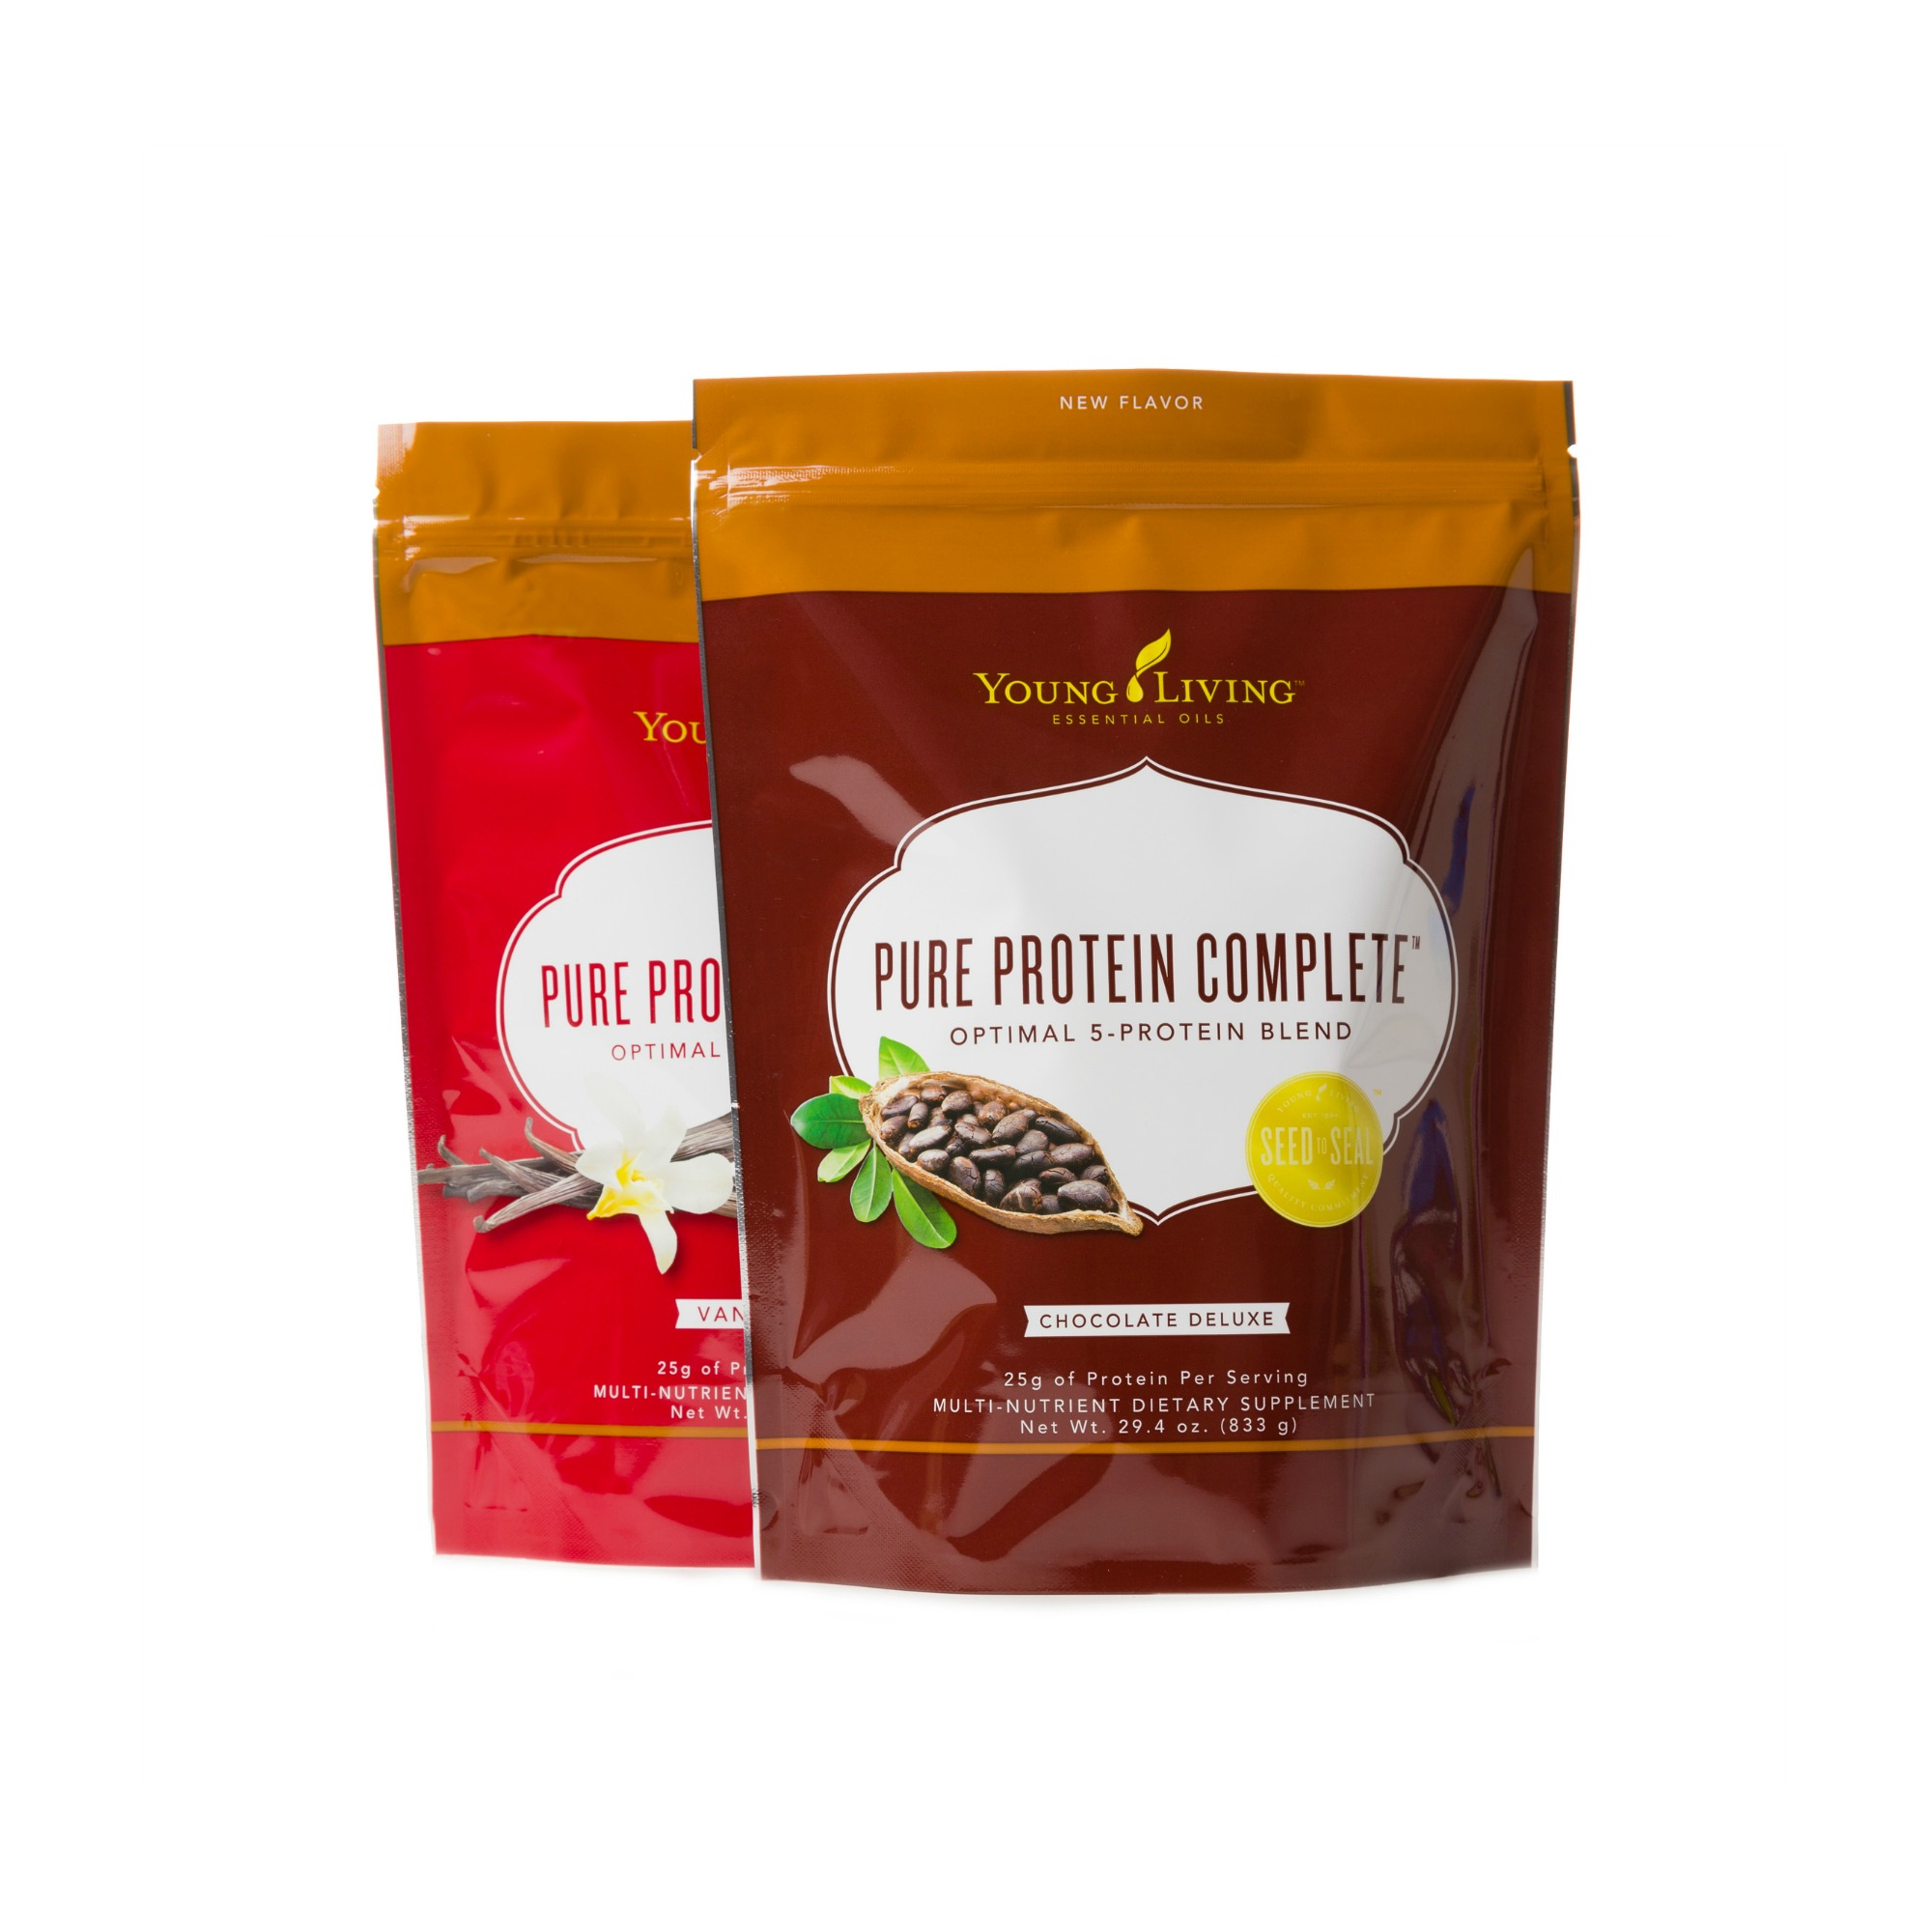 PURE PROTEIN COMPLETE    Pure Protein Complete is a comprehensive protein supplement that combines a proprietary 5-Protein Blend, amino acids, and ancient peat and apple extract to deliver 25 grams of protein per serving in two delicious flavors, Vanilla Spice and Chocolate Deluxe. Its foundation of cow and goat whey, pea protein, egg white protein, and organic hemp seed protein provide a full range of amino acids, which support overall protein utilization in the body. Ancient peat and apple extract, along with a powerful B-vitamin blend, complete the formula. Together they support ATP production, the energy currency of the body. This innovative formula makes Pure Protein Complete the perfect option for those looking for a high protein supplement that features a full range of amino acids.   Click here   to learn more about this product.